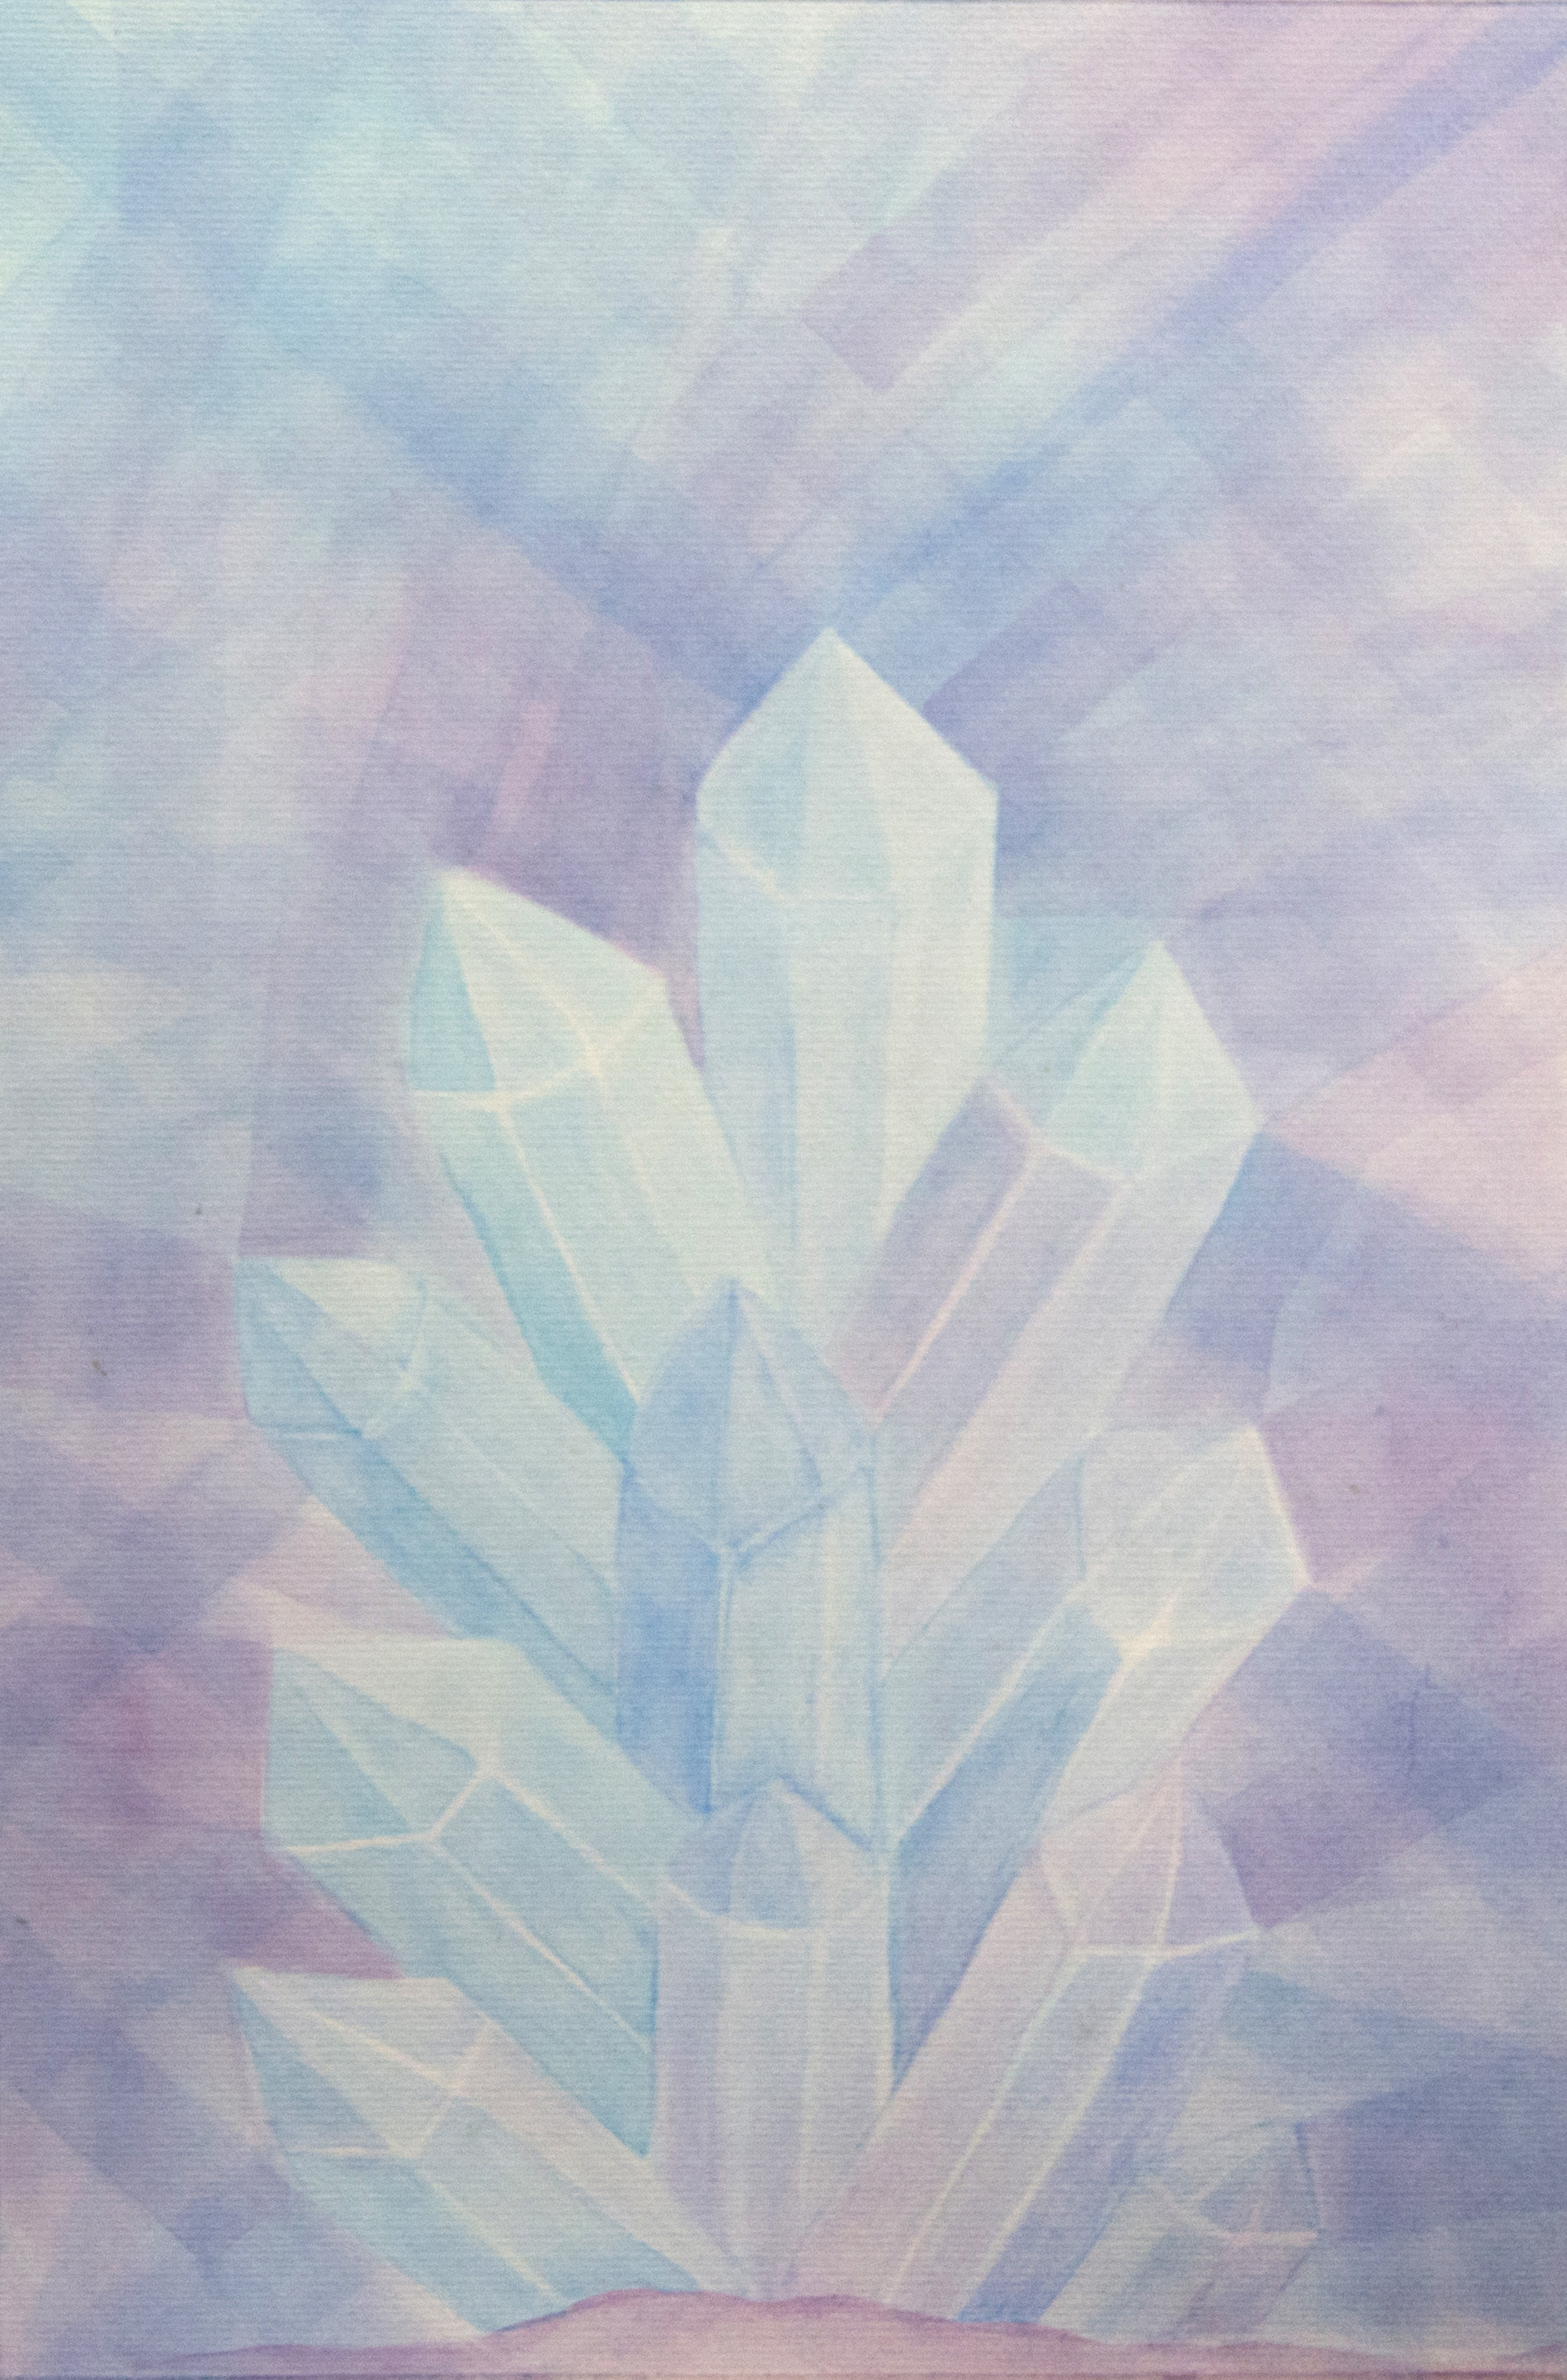 Crystals - Watercolor Veil Painting 14 X 20 - $400